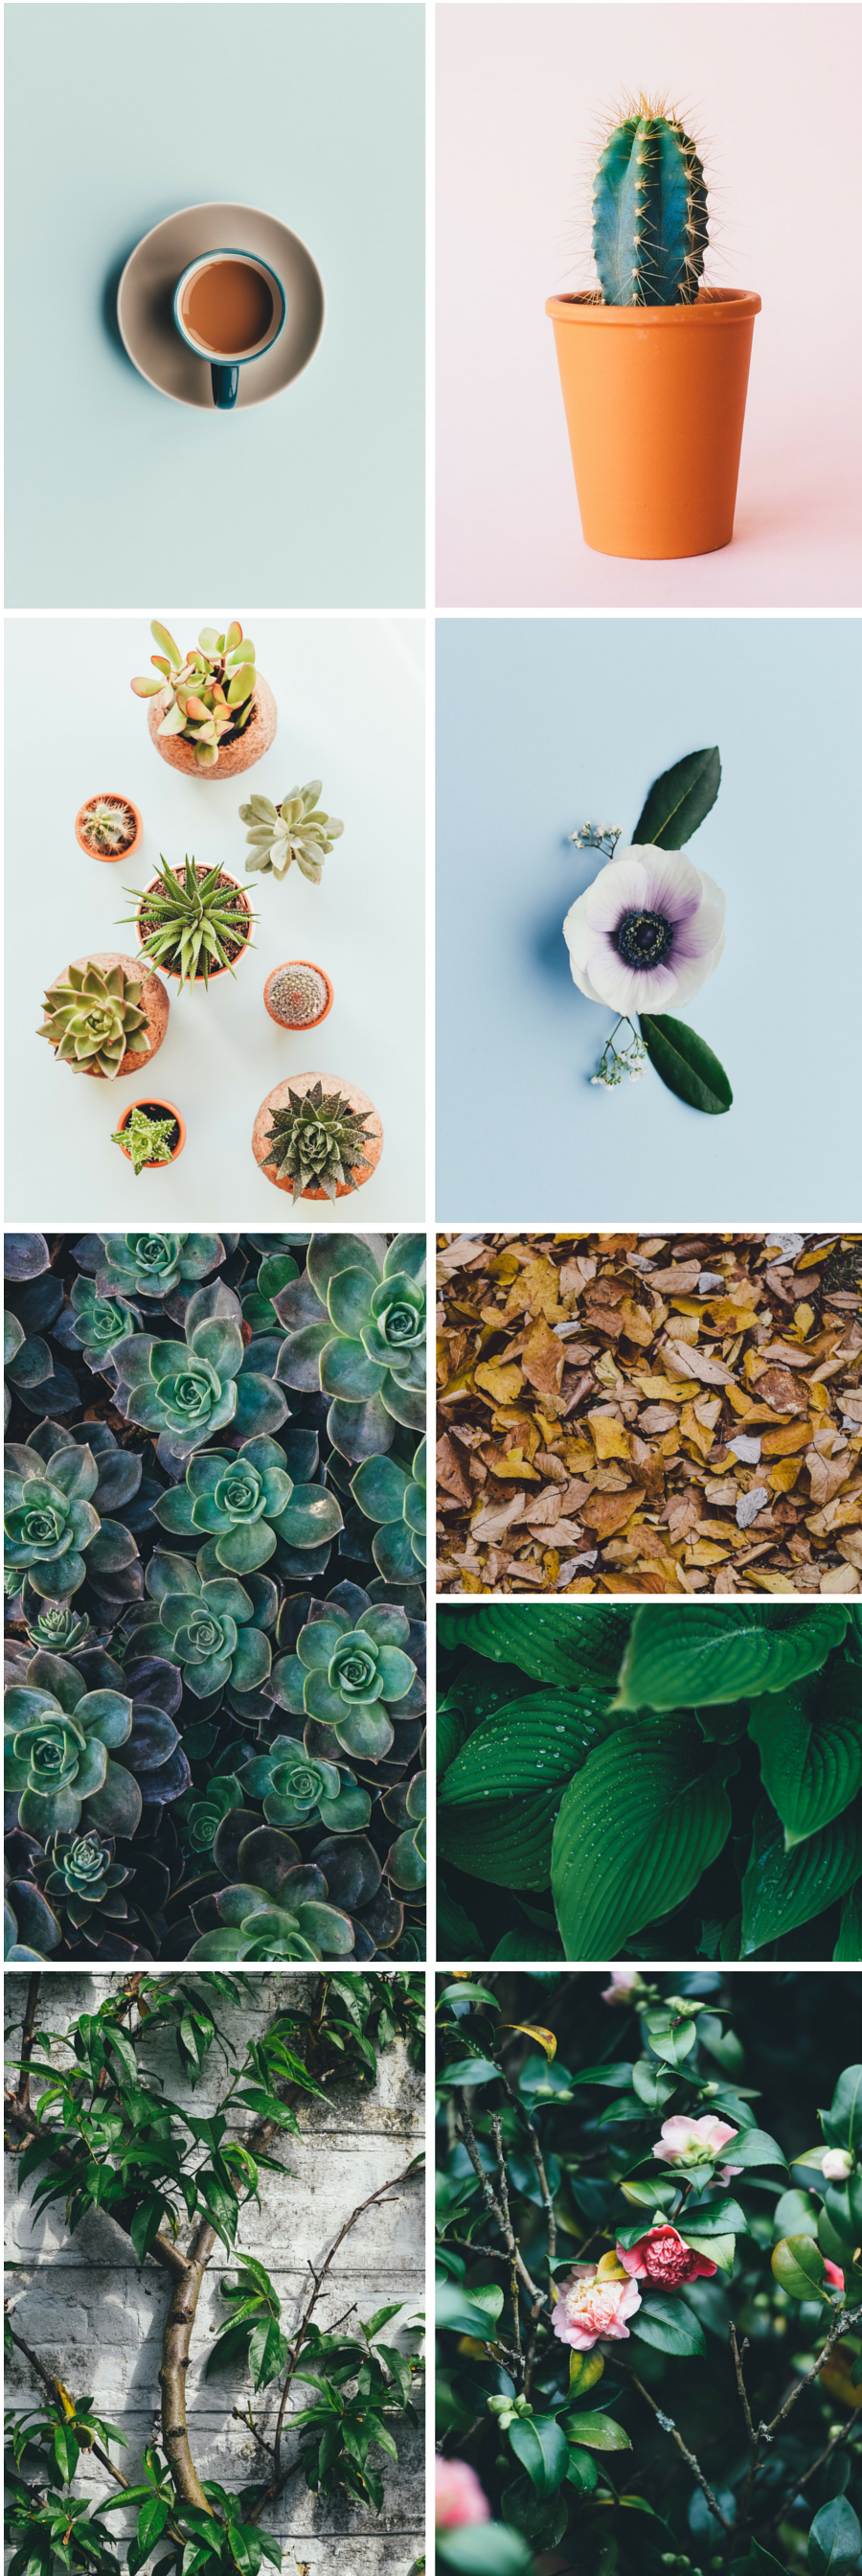 Curated Free Stock Photos Vol 02